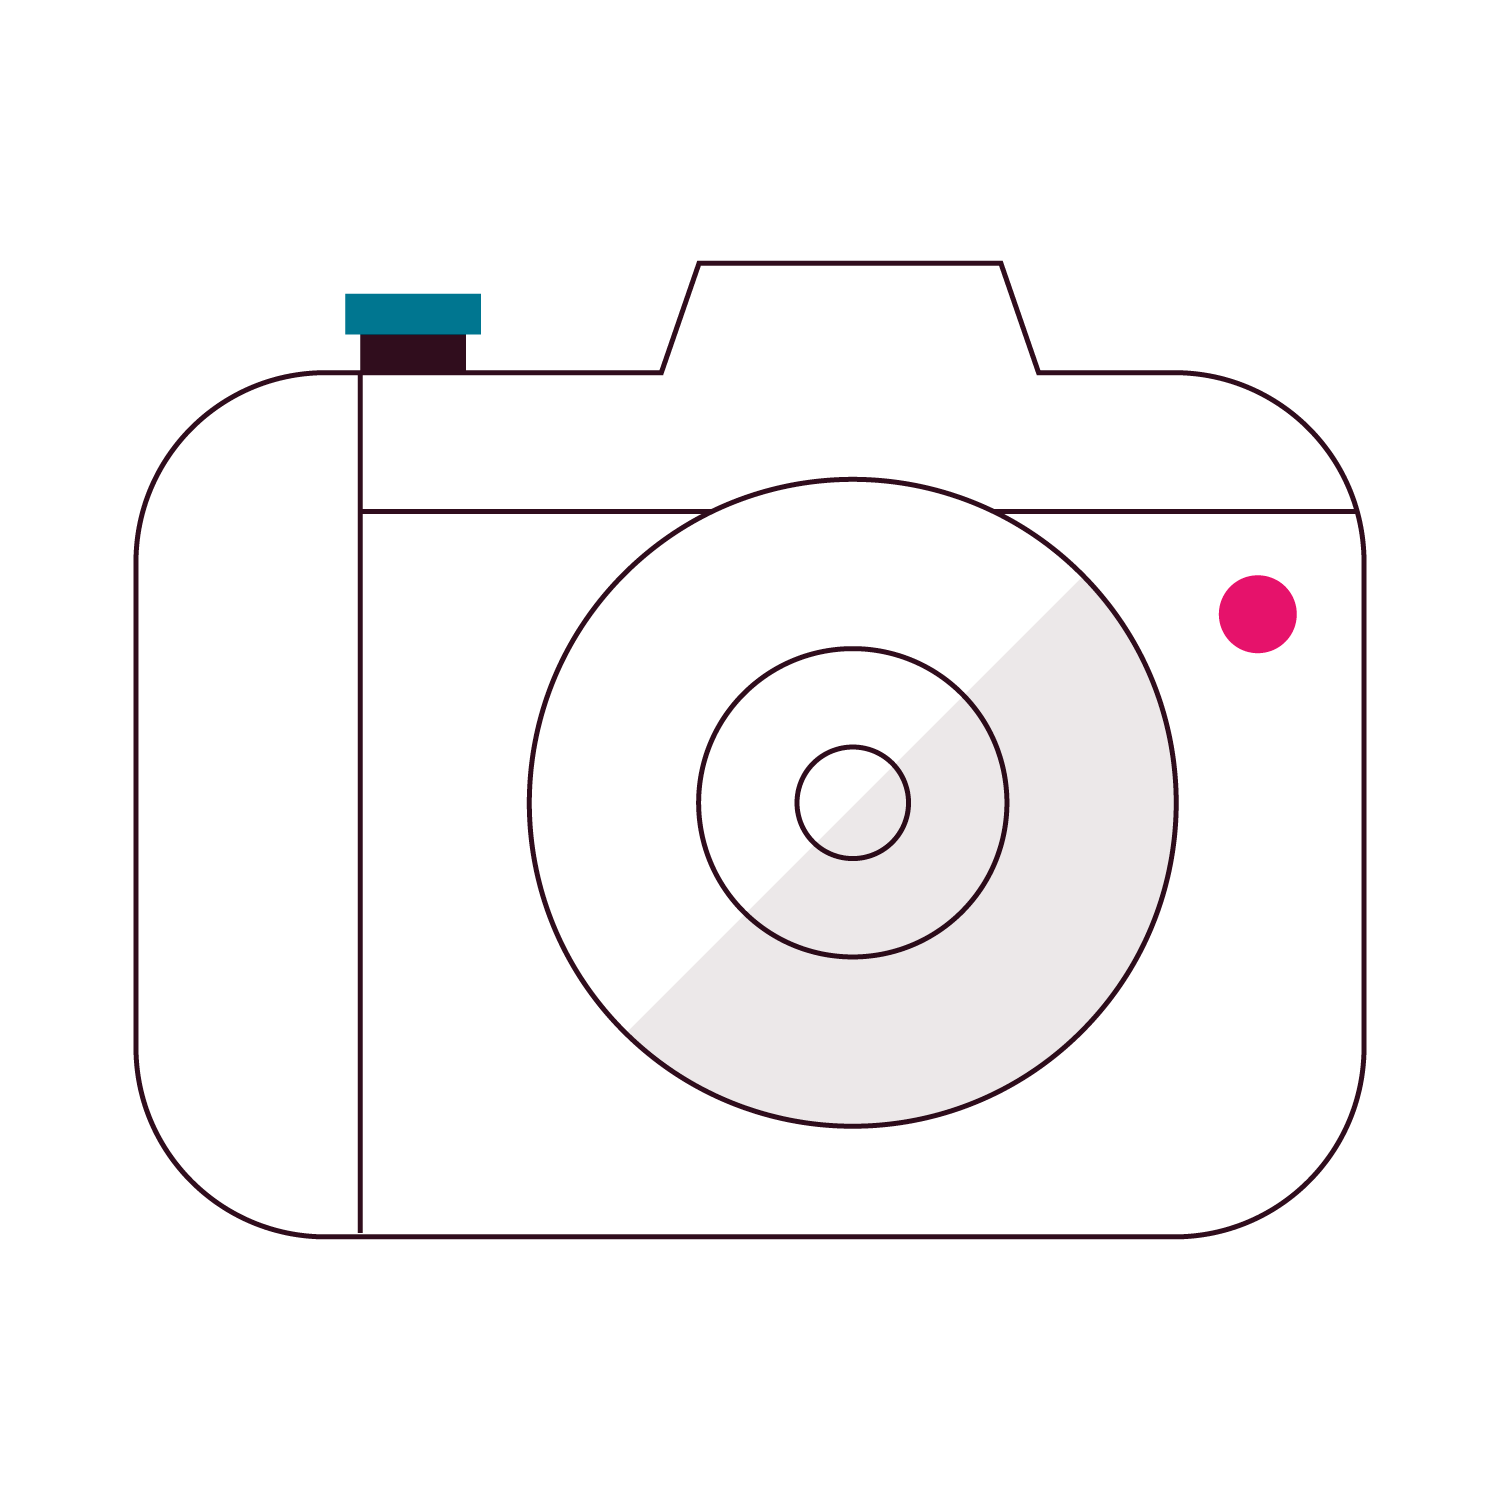 Product Photography Services in Bury St Edmunds, Suffolk